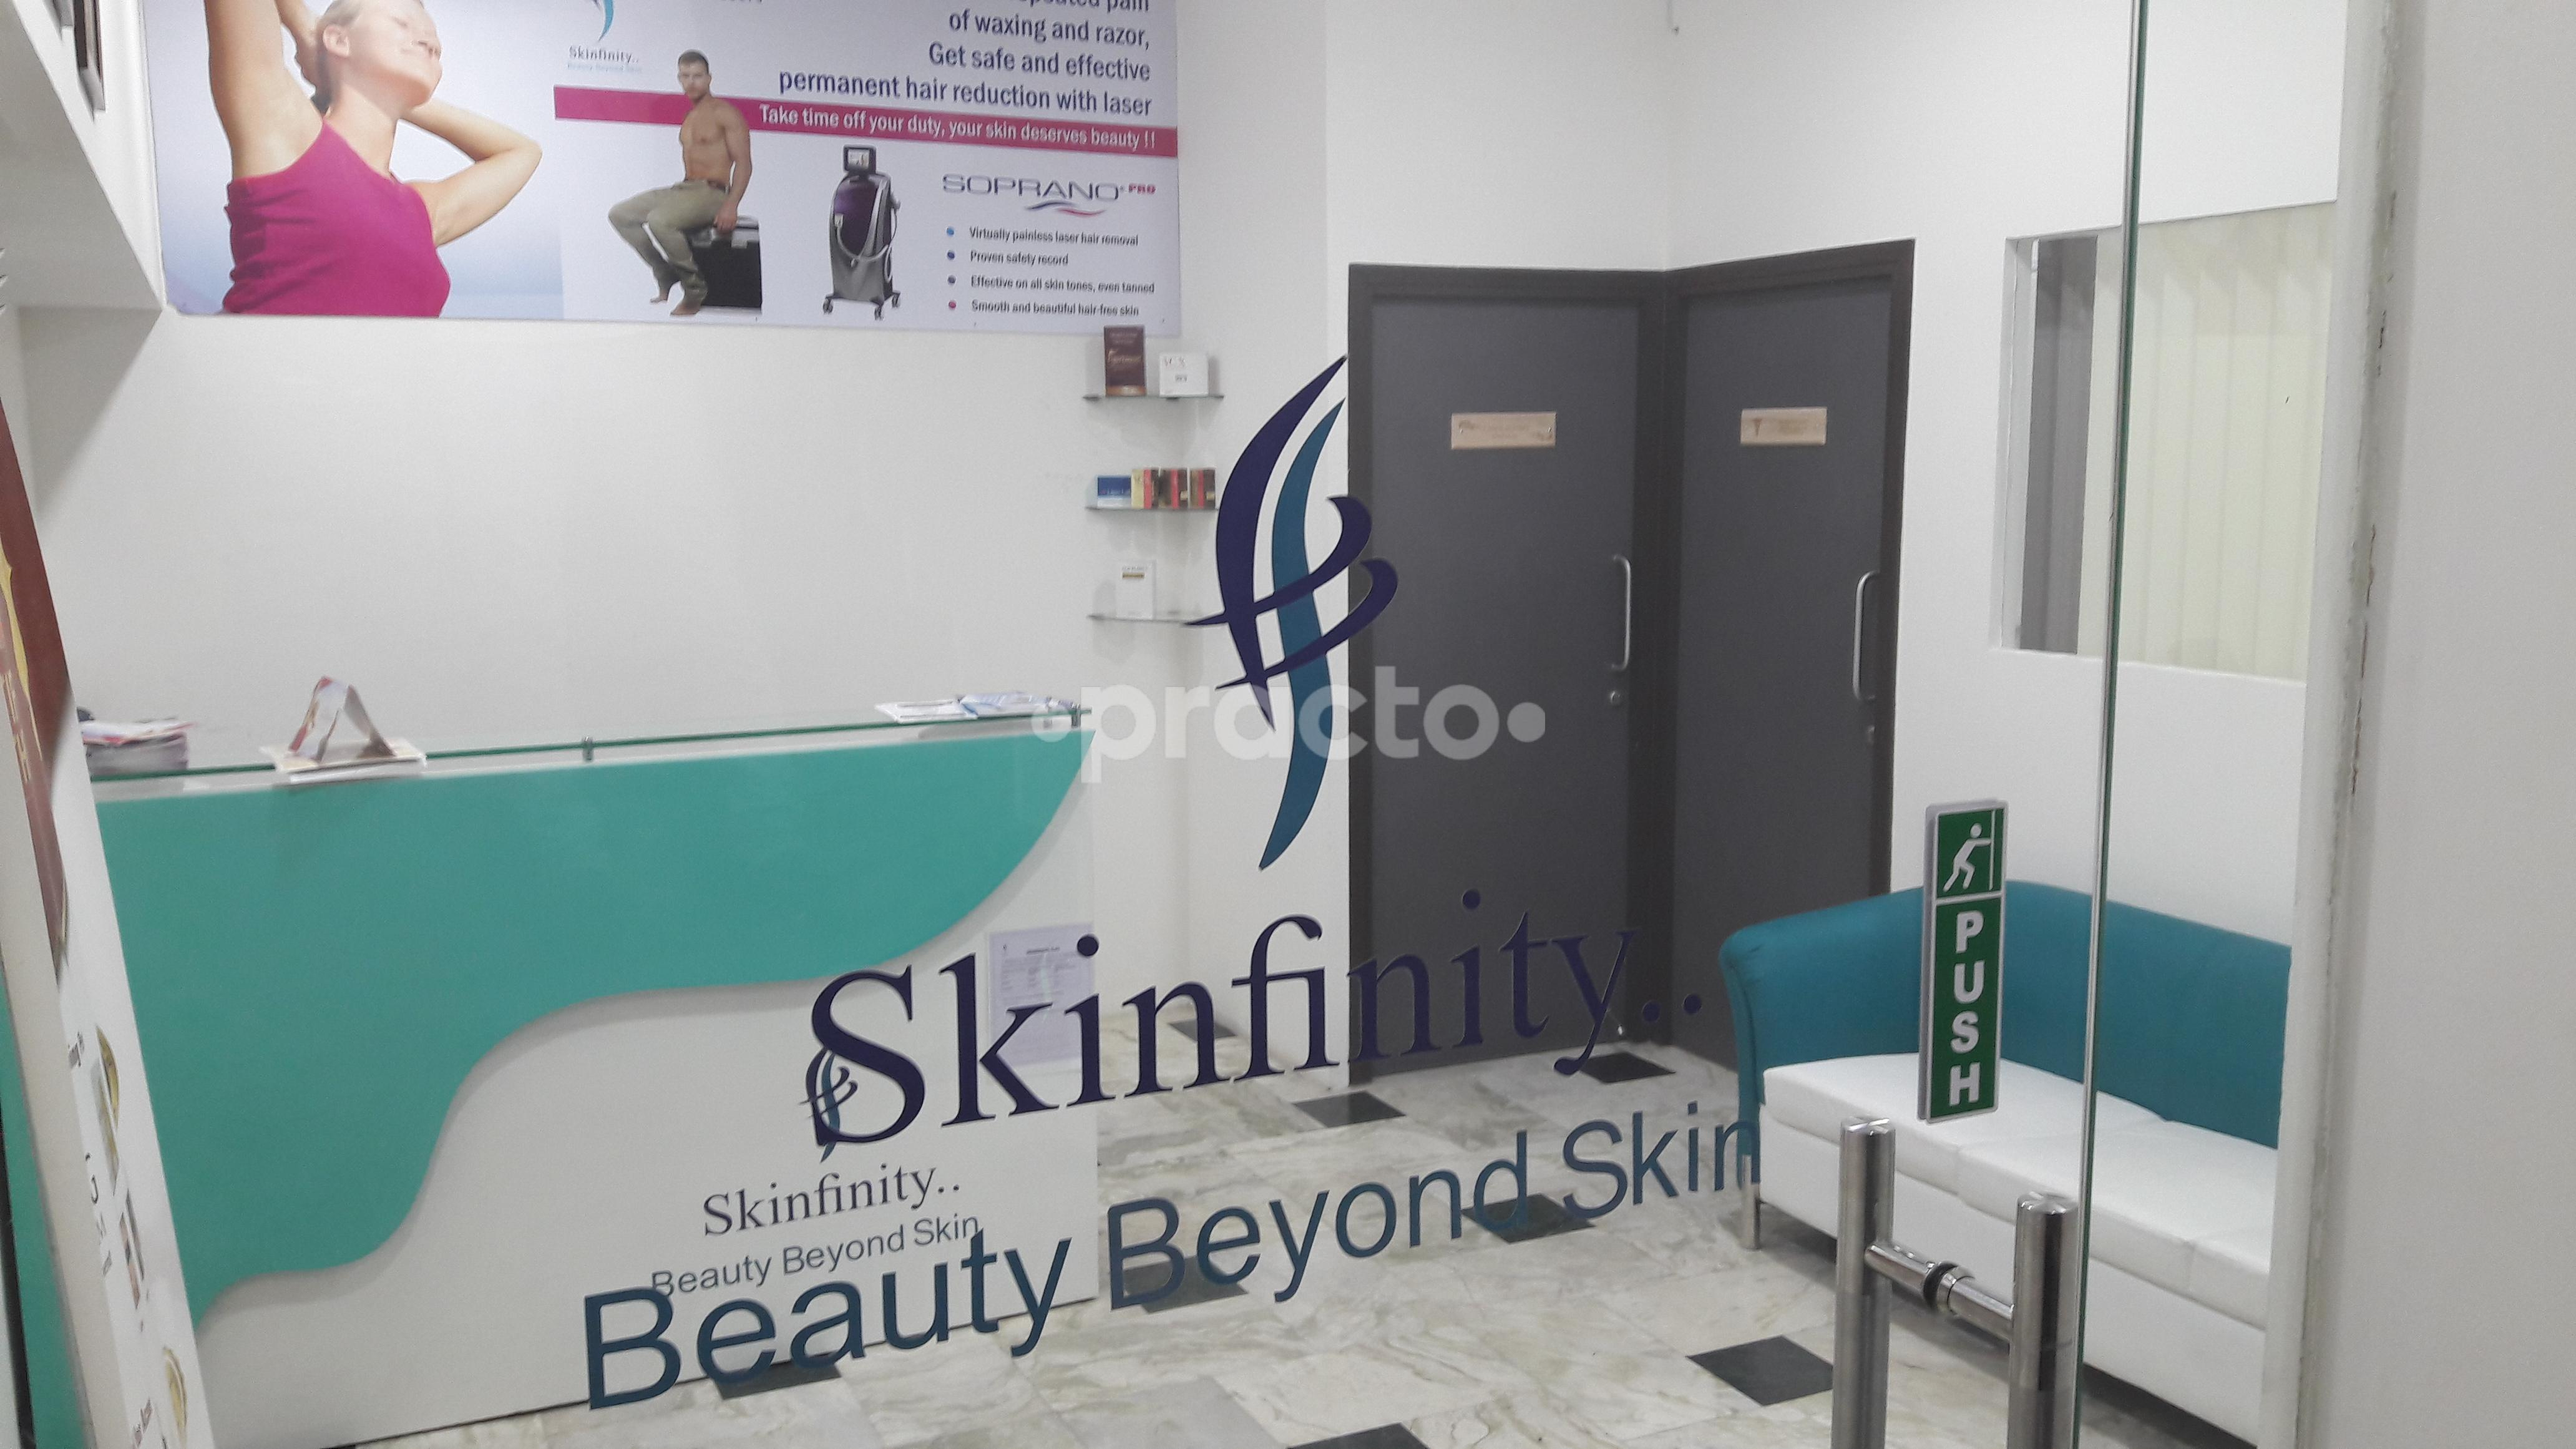 Best Skin Clinics in Noida - Book Appointment, View Reviews, Address